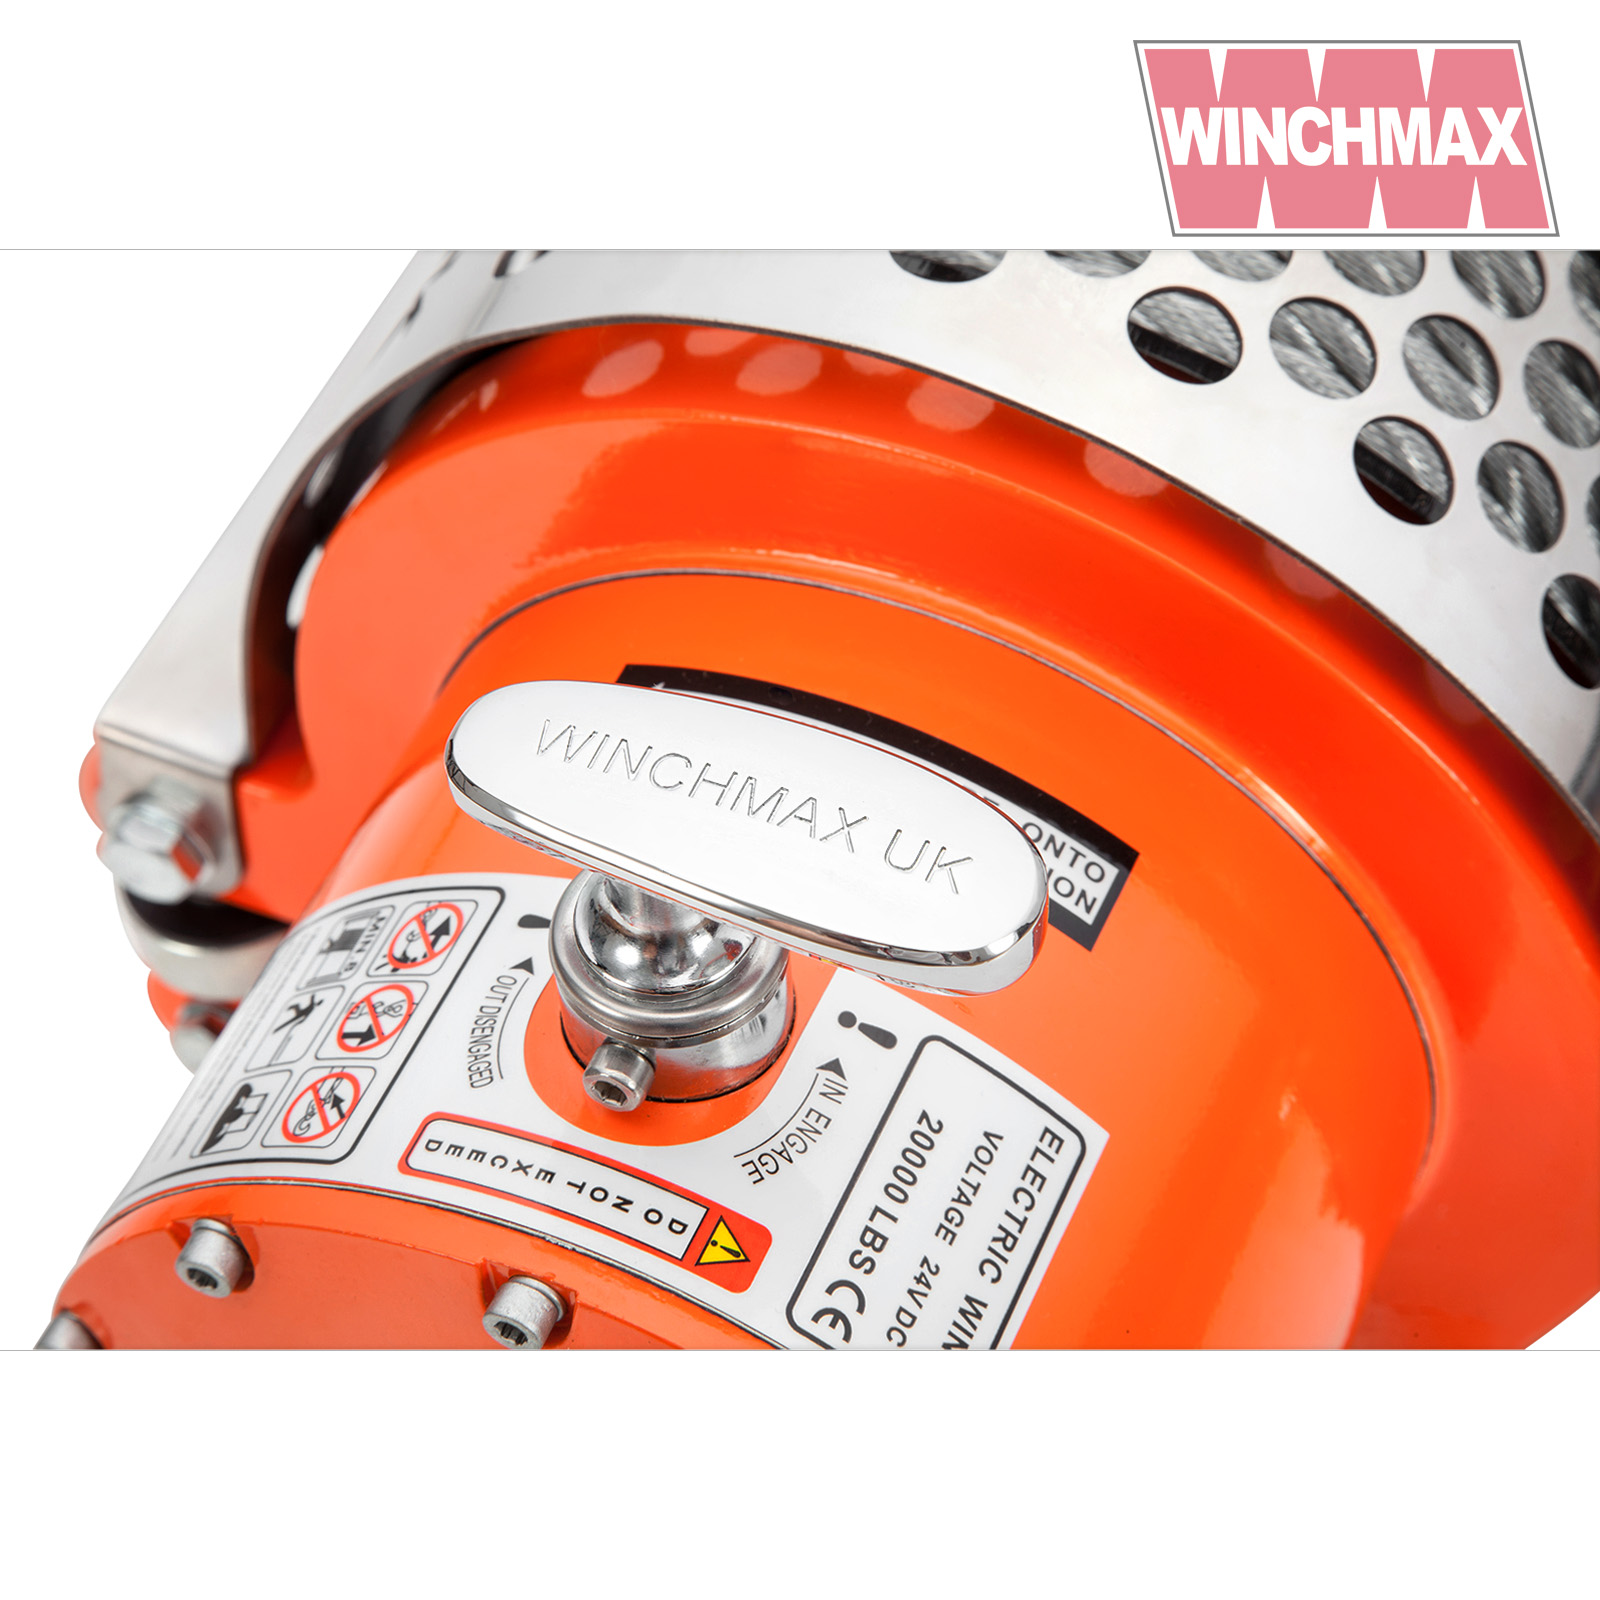 Electric Winch 24v Recovery 4x4 20000 Lb Winchmax Original Orange Wiring Instructions Remote